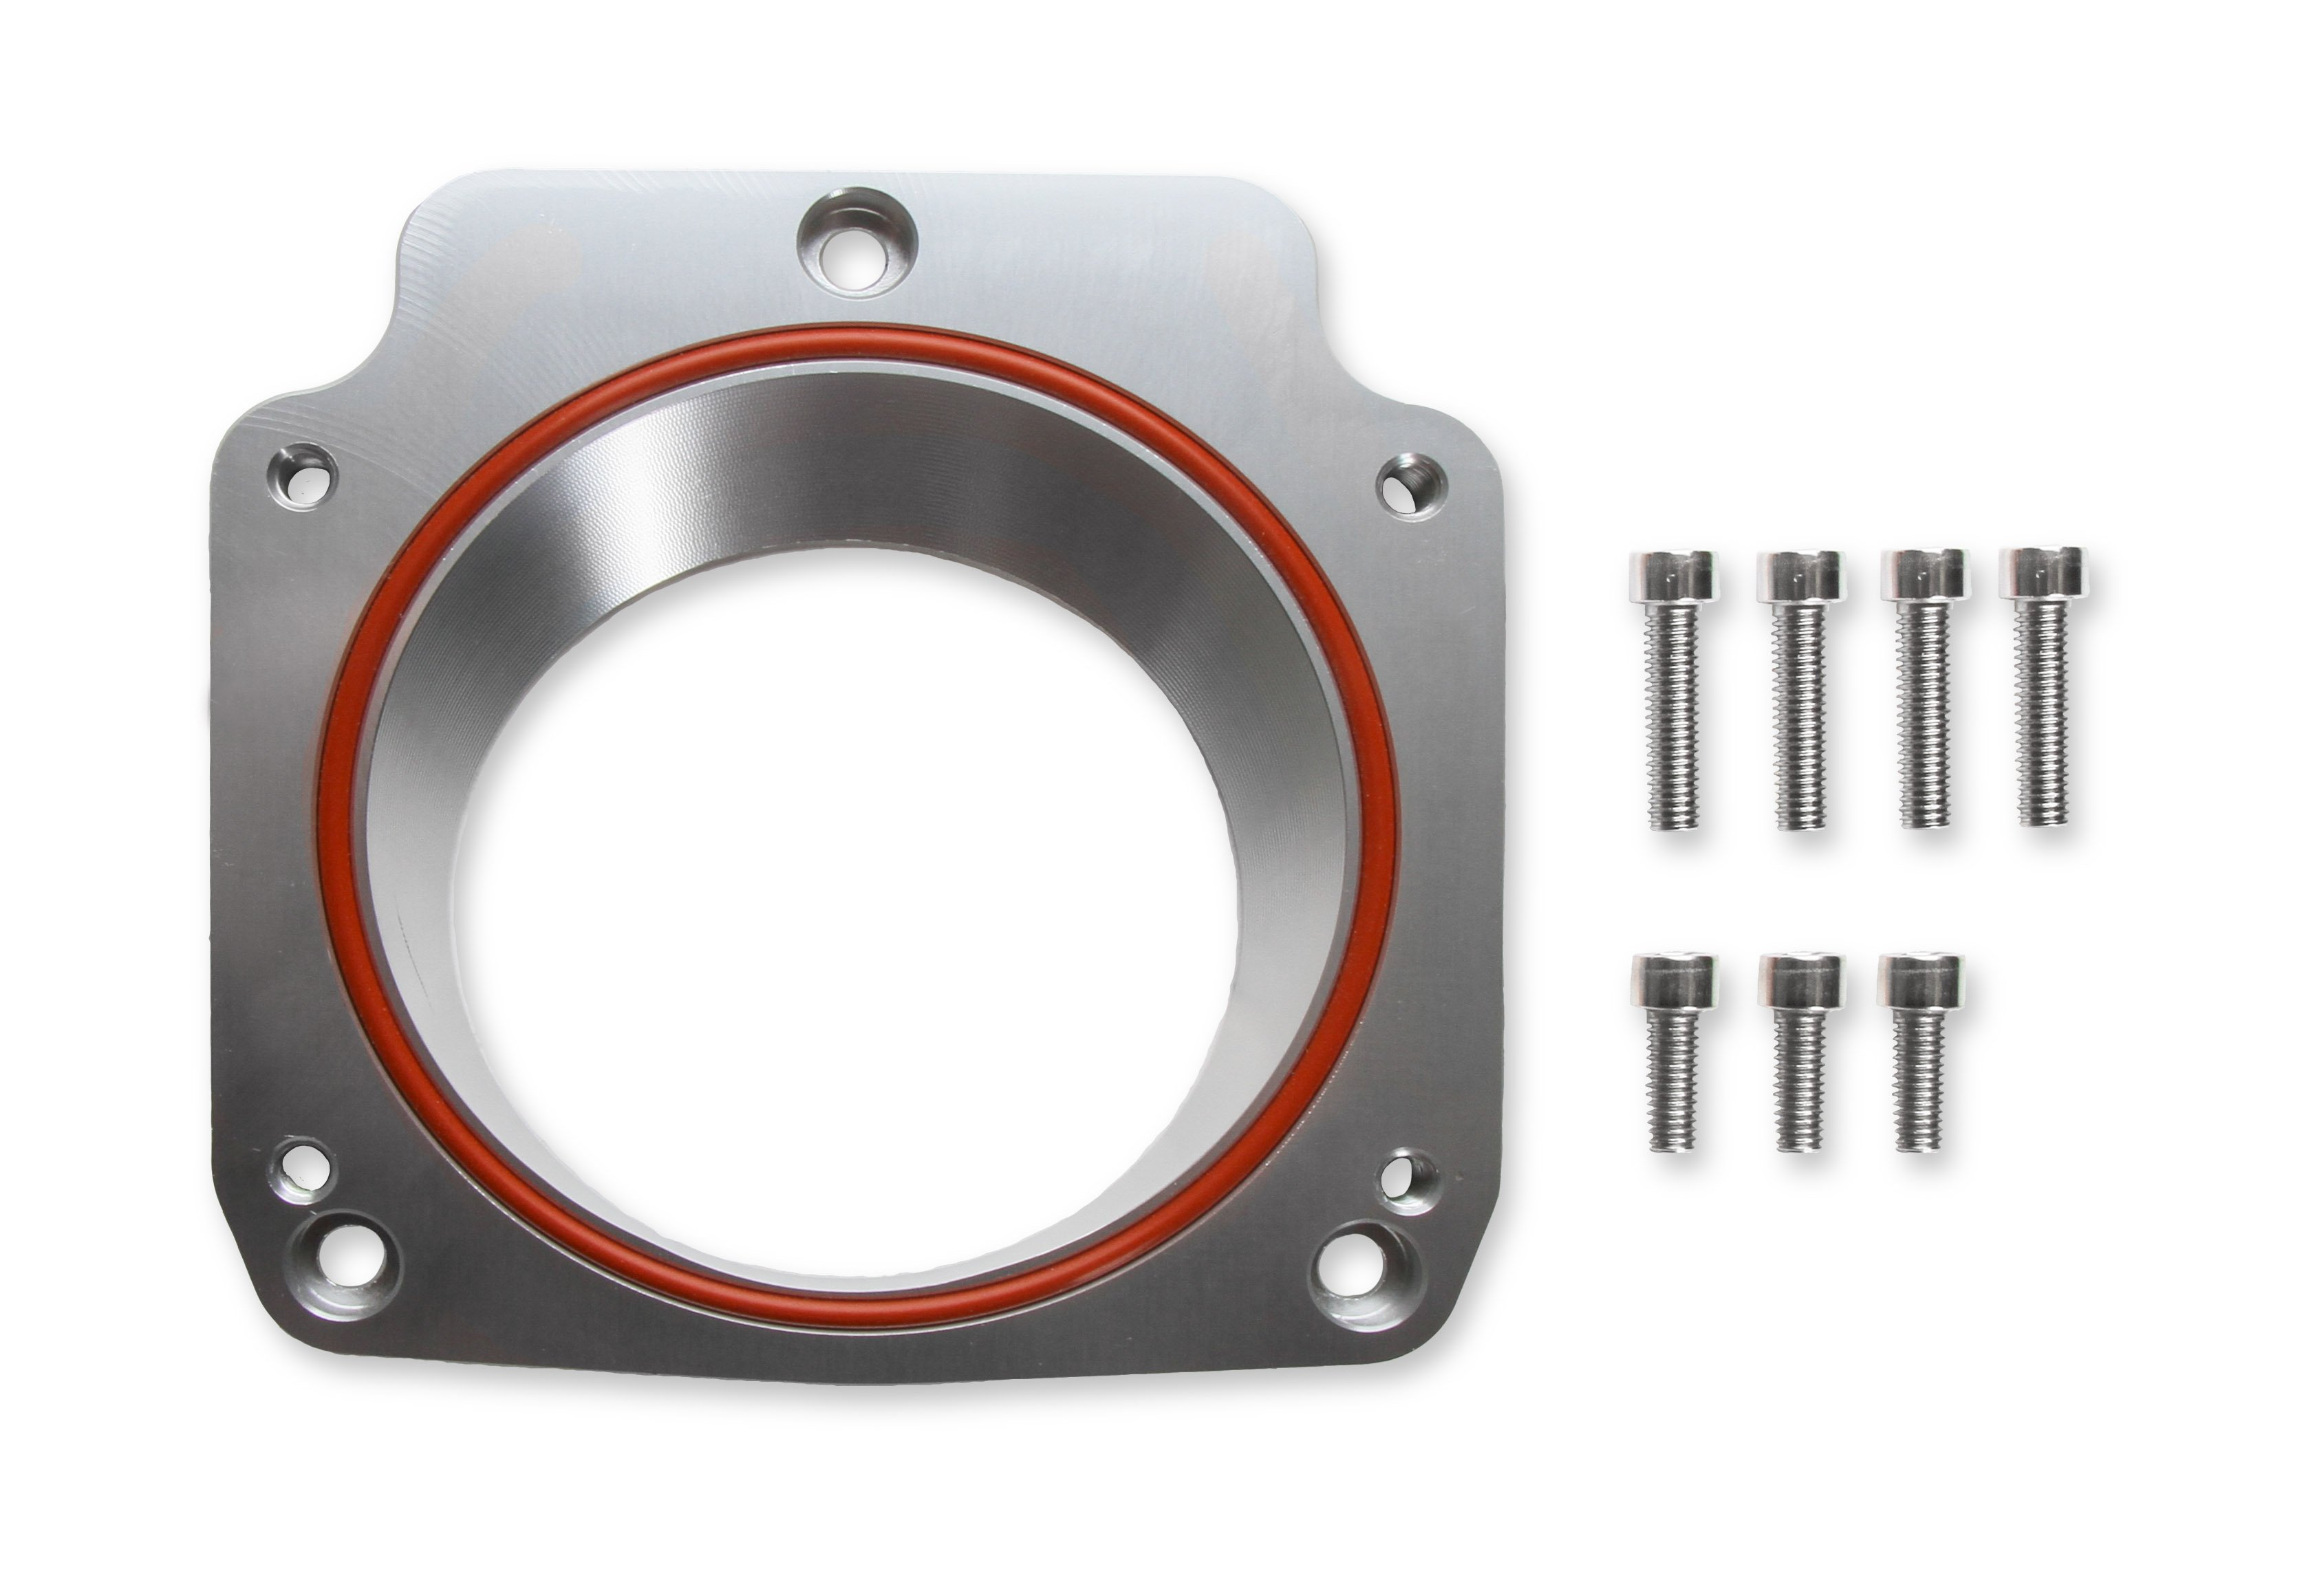 Holley 860020 Throttle Body Spacer